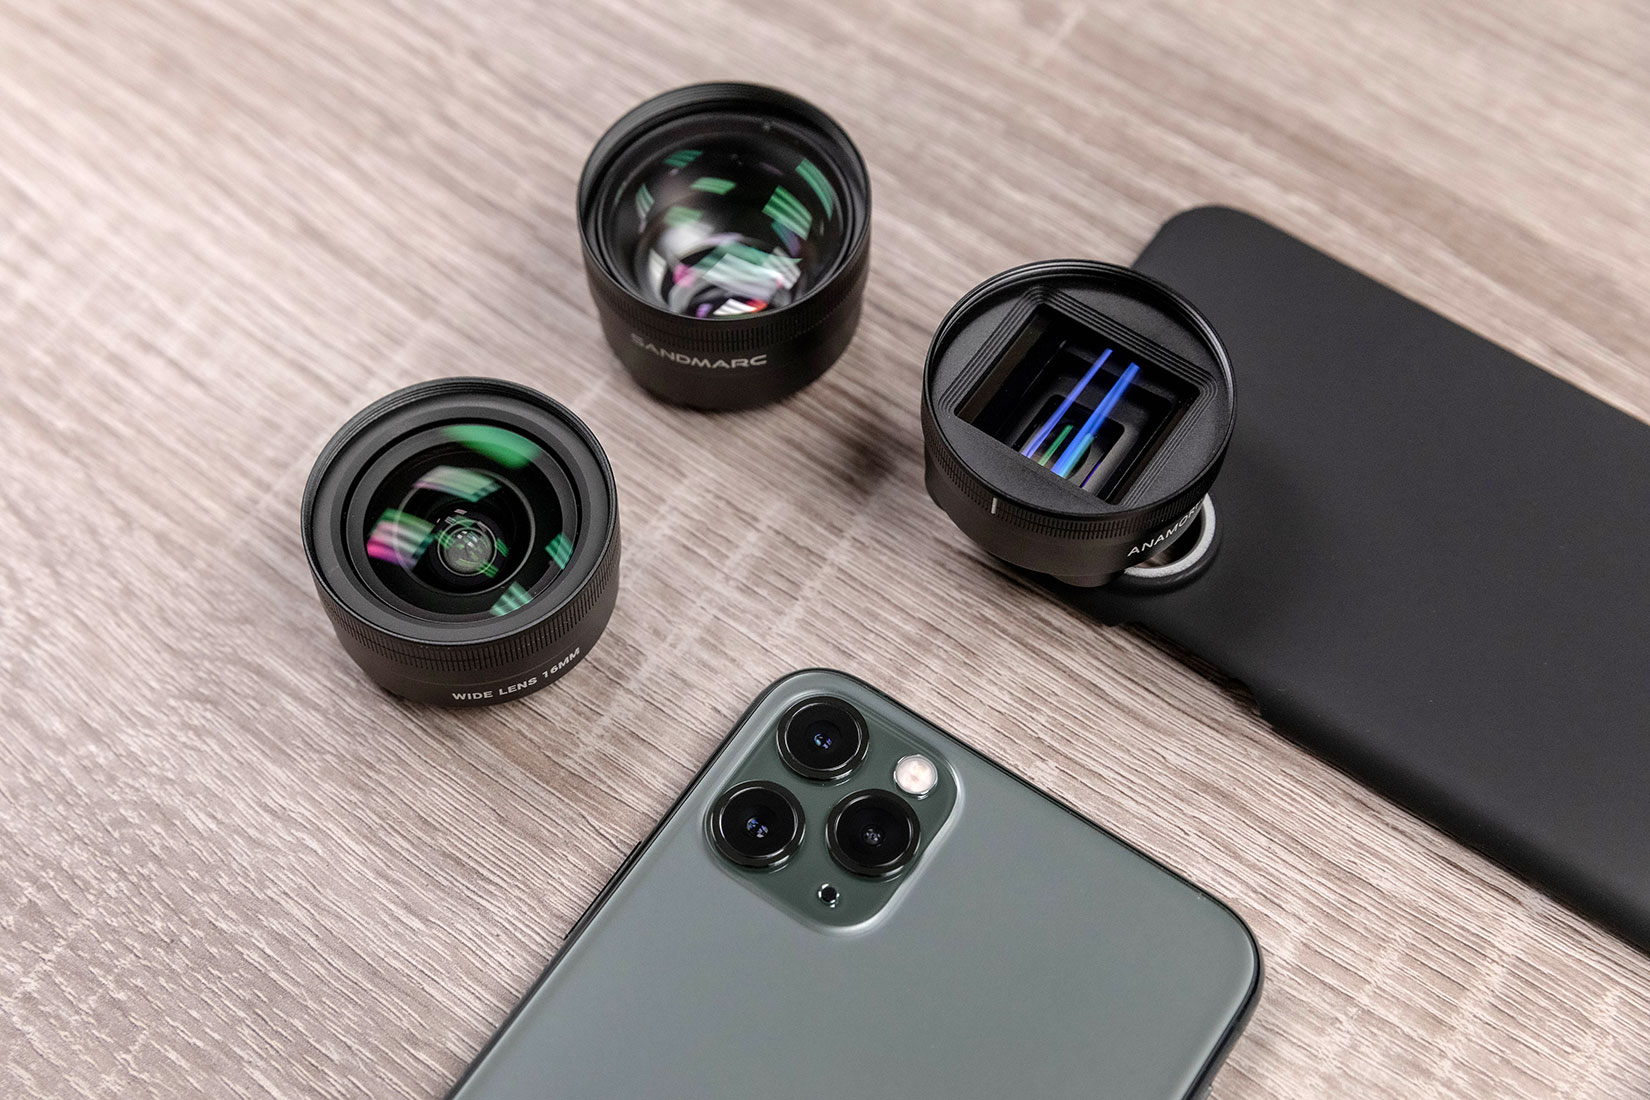 Sandmarc lenses and cases for the iPhone 11 line